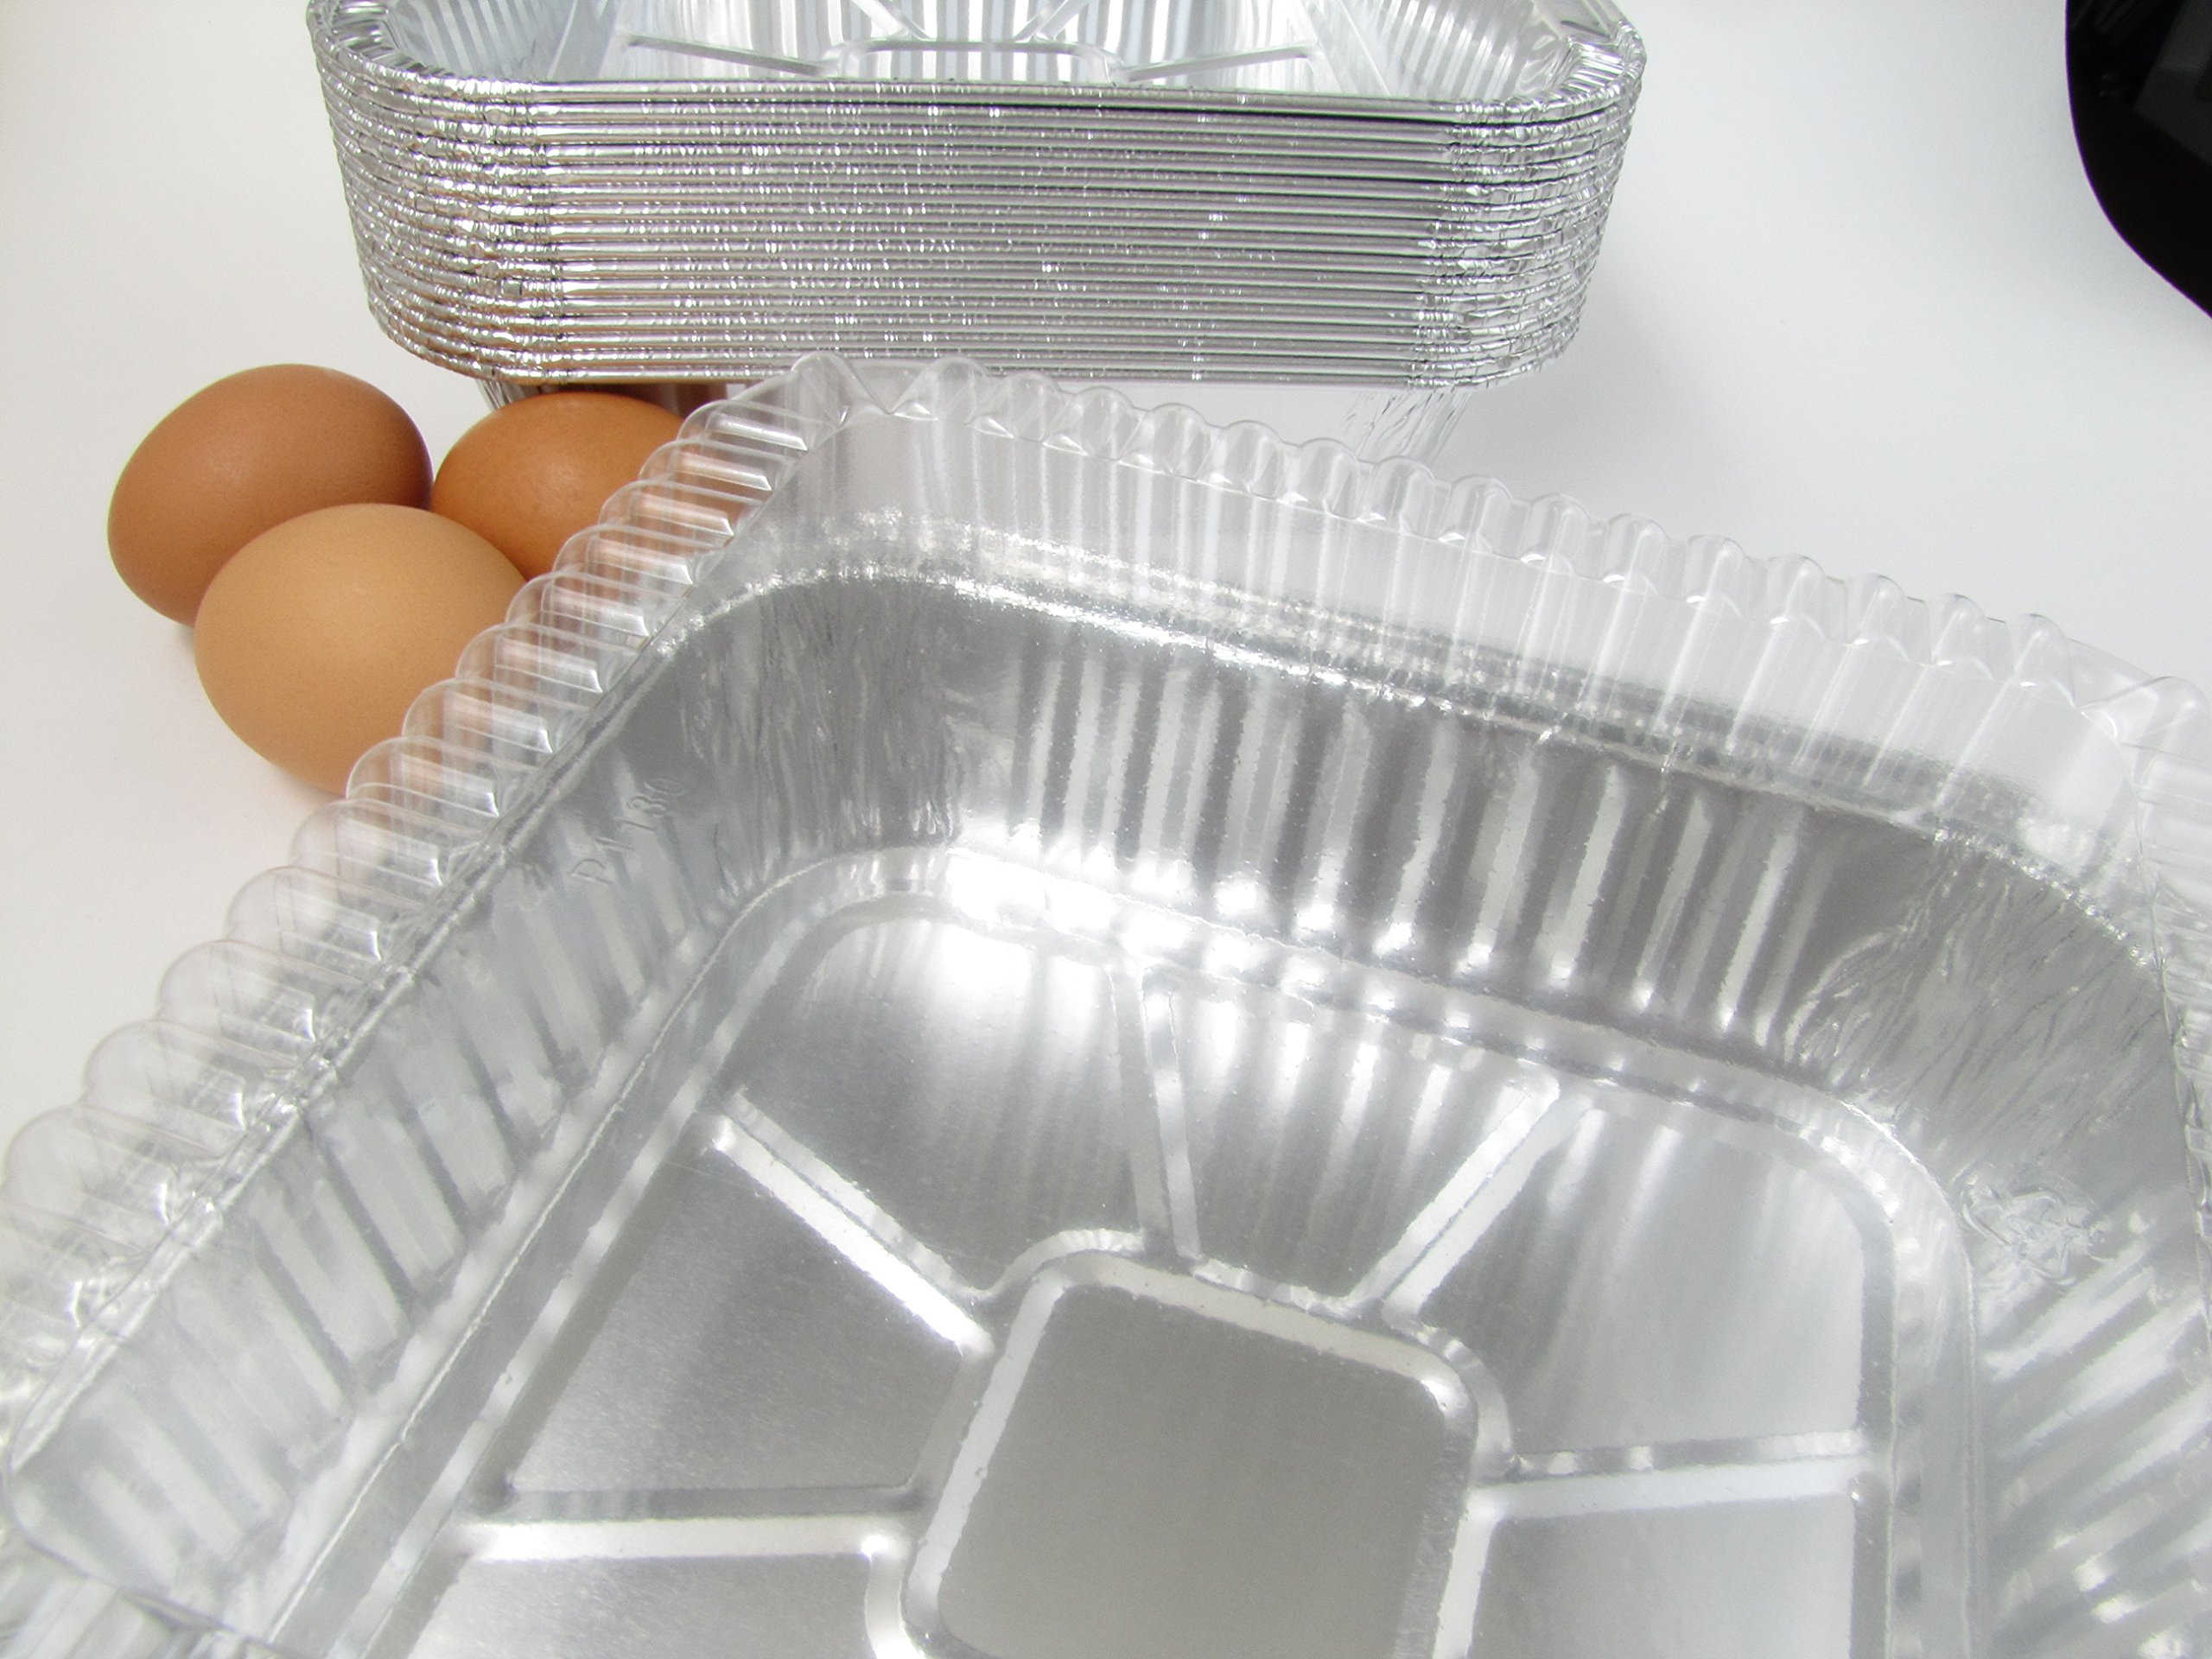 Disposable Aluminum 9 X 9 X 1 3/4 '' Square Cake Pan with Clear Plastic Lid #1100P (100)